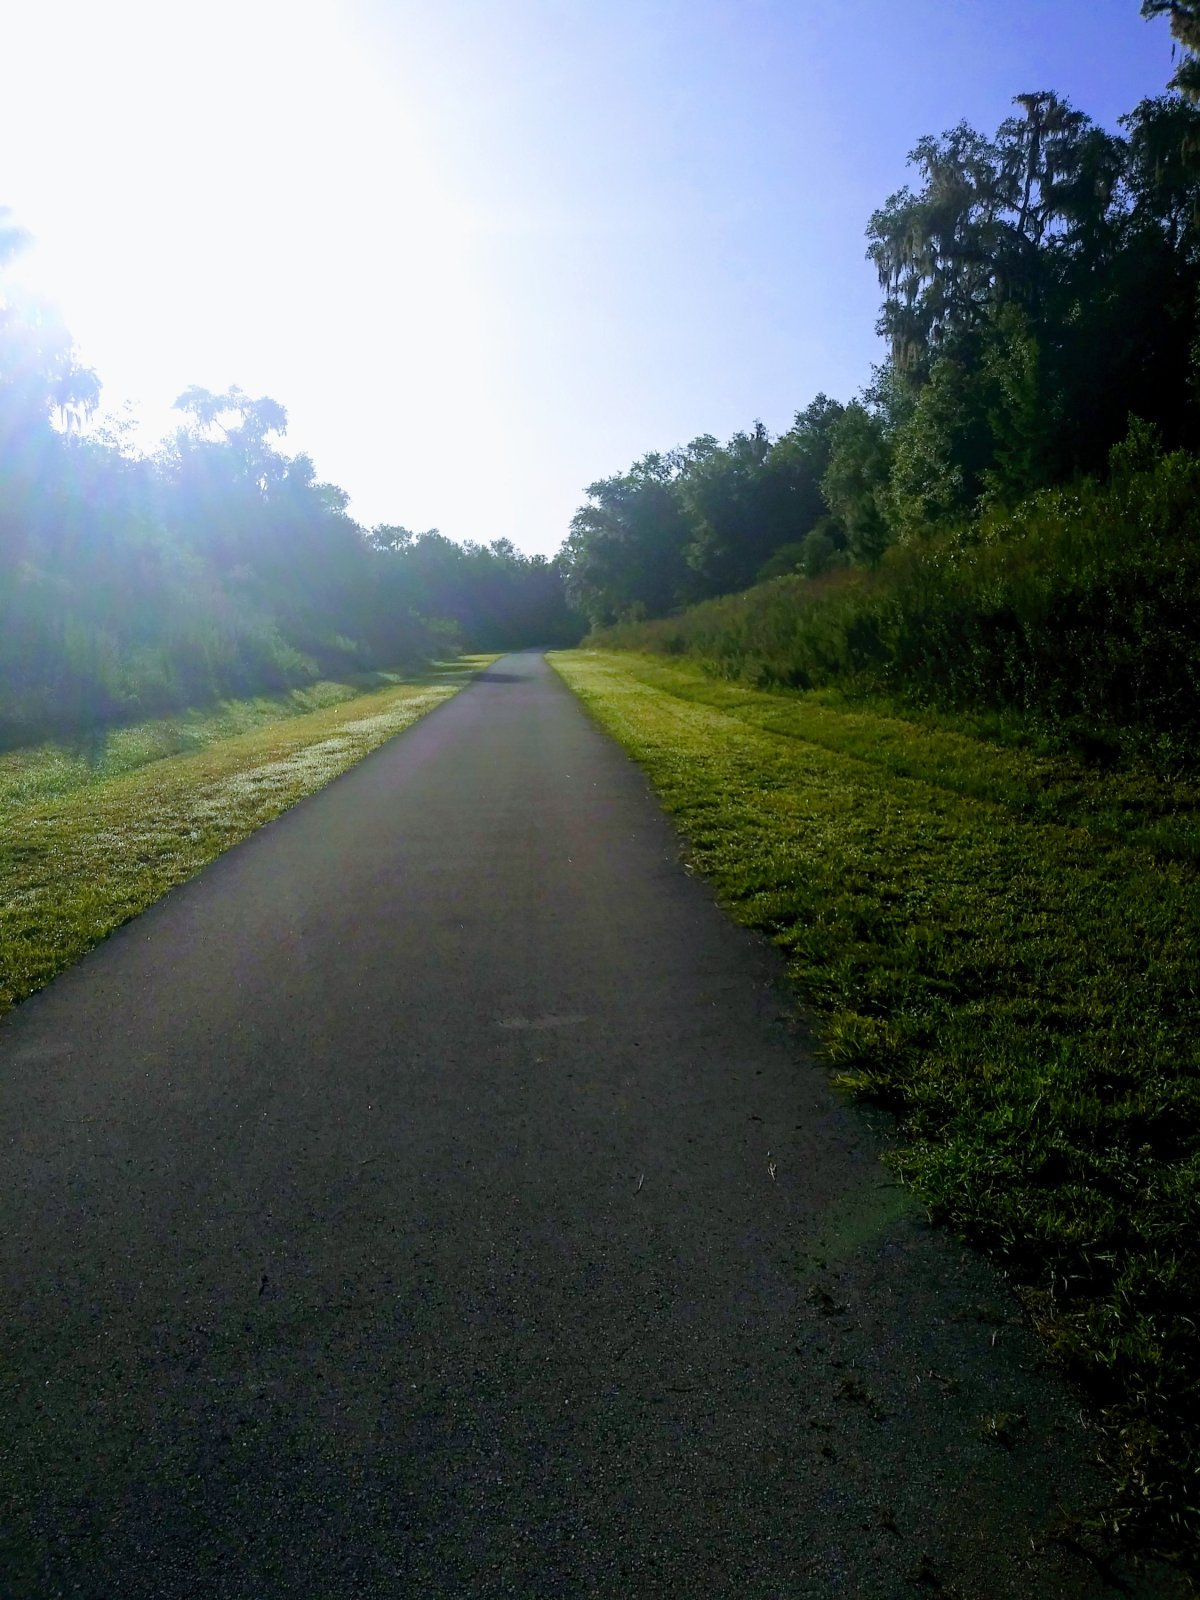 The Road toSelf-Acceptance